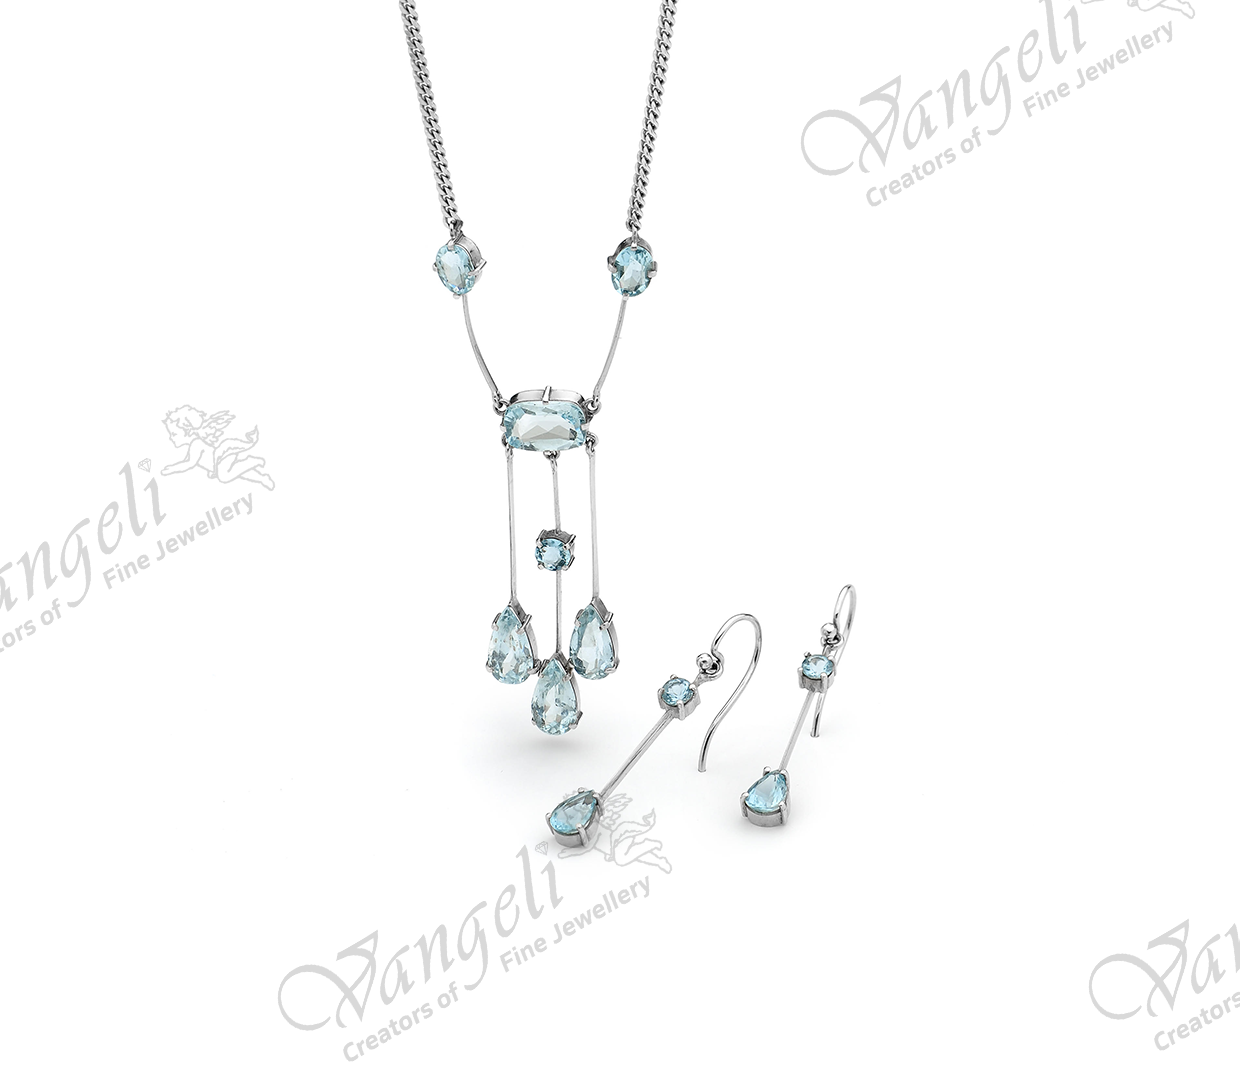 Custom designed 18ct white gold with hand-cut aquamarines necklace and matching earrings